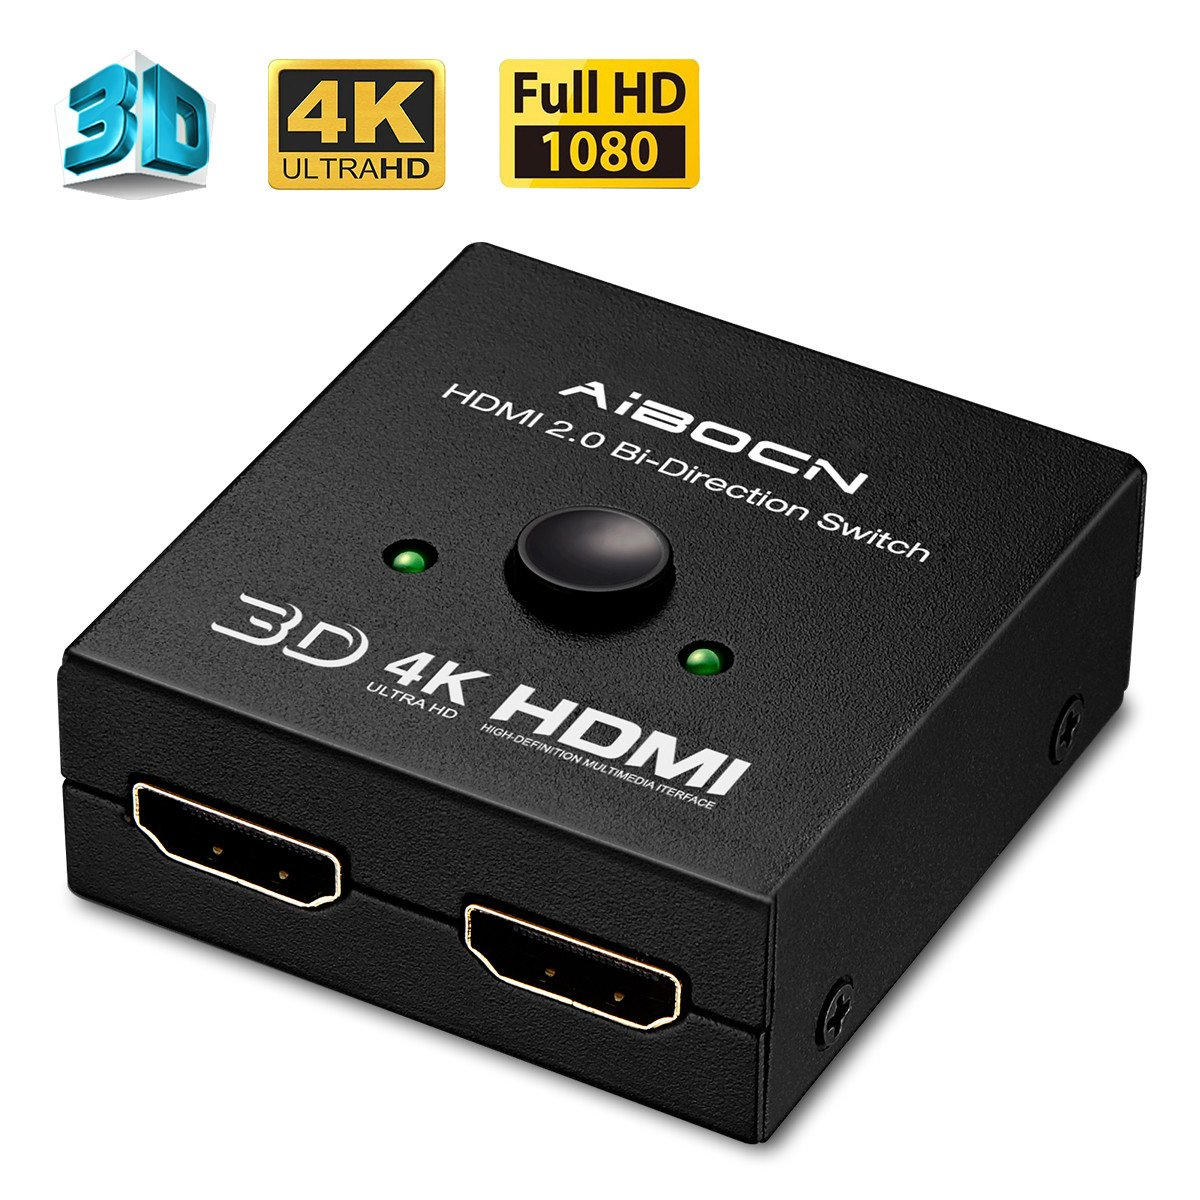 AIBOCN 4K HDMI Switch Splitter, 2 Ports Bi-direction Manual Switch Supports 4K 3D HD 1080P for PS4, Xbox, Roku 3, Blu-Ray player, HDTV etc